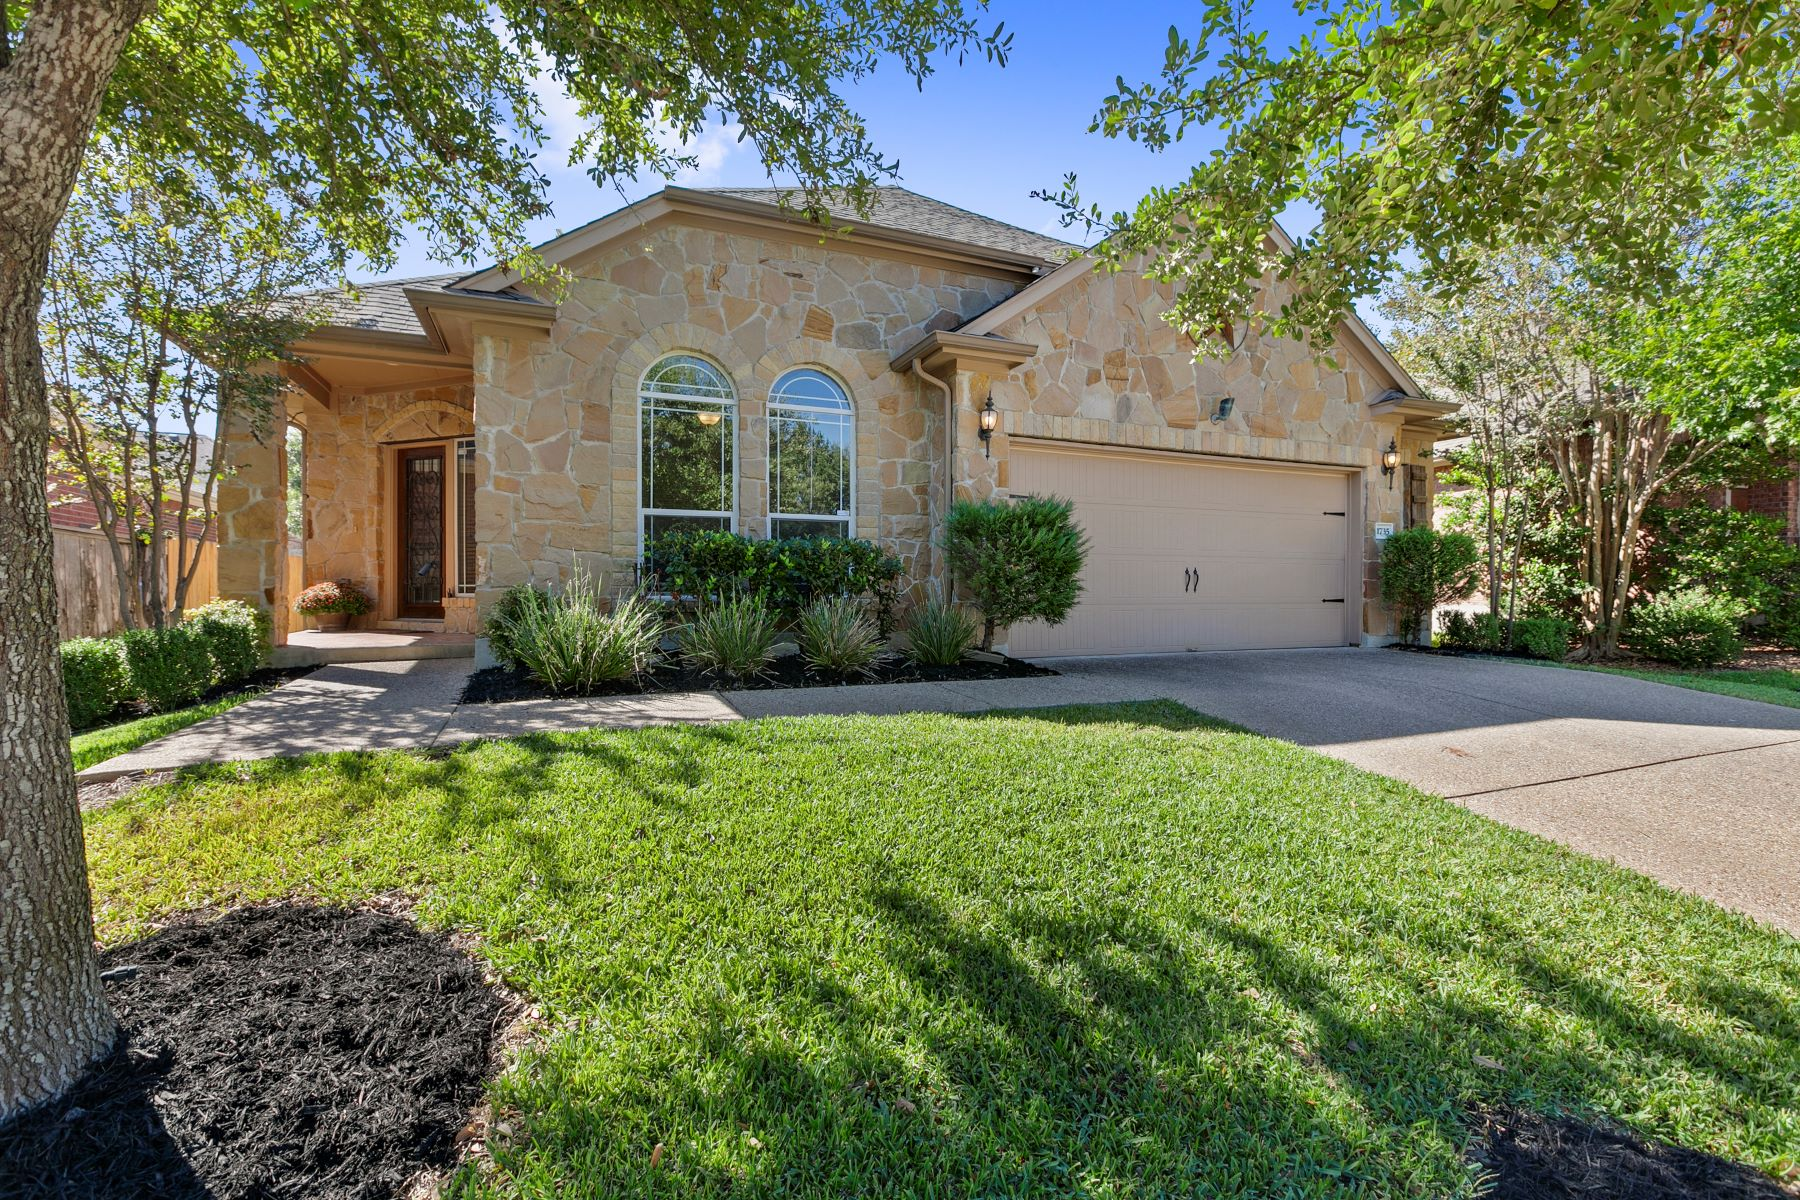 Single Family Homes for Sale at 1735 Westmeadow Trail, Round Rock, TX 78665 1735 Westmeadow Trail Round Rock, Texas 78665 United States